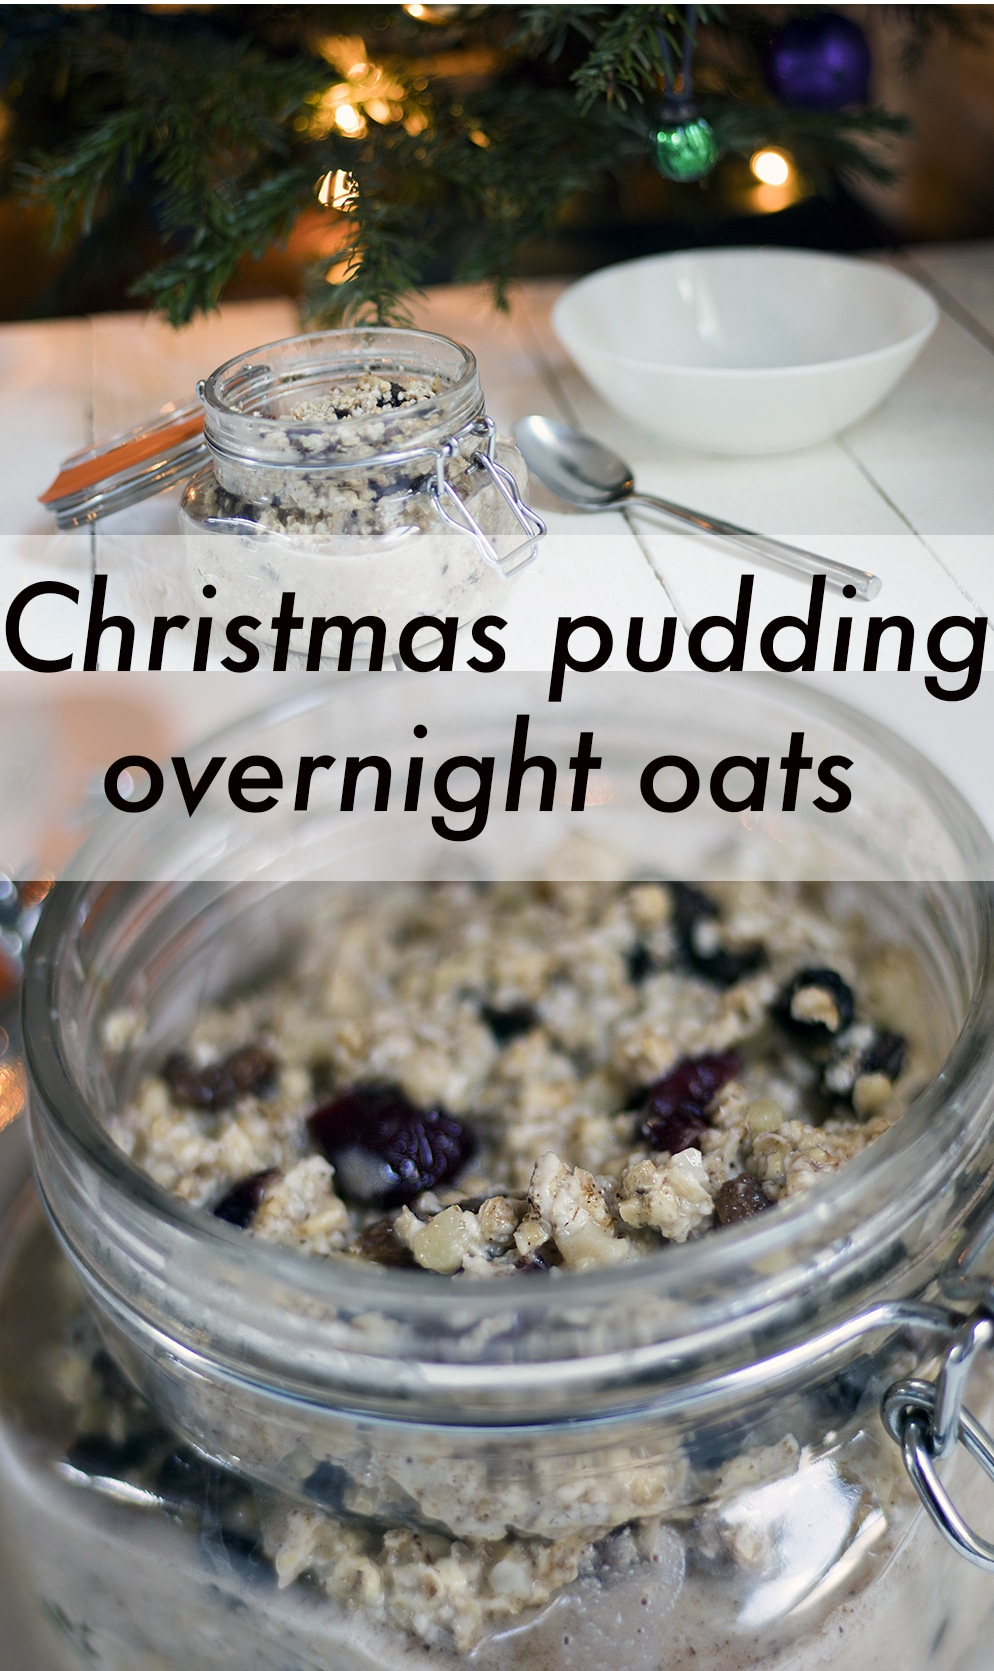 Christmas pudding spiced cinnamon overnight oats